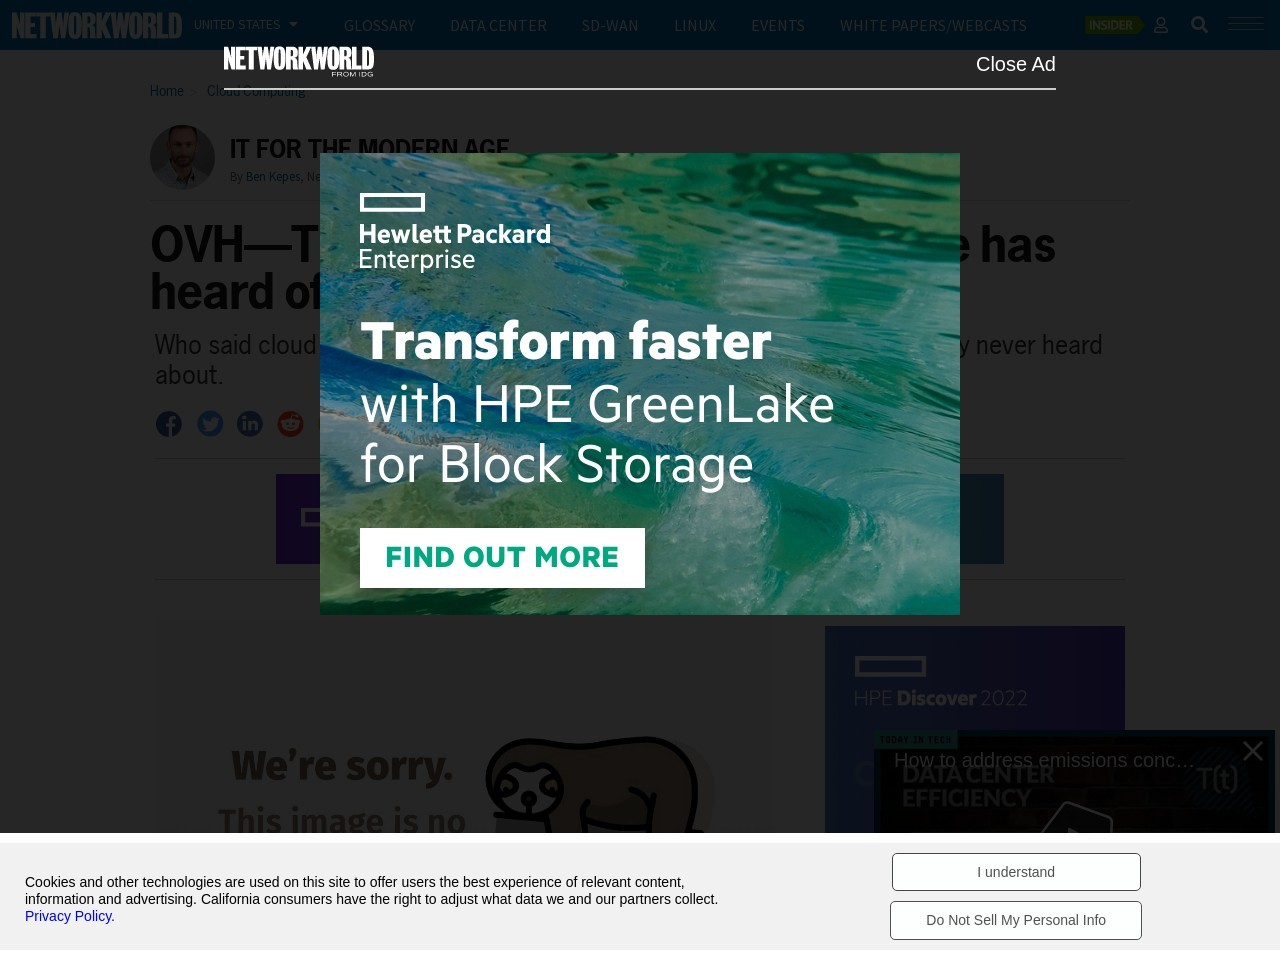 OVH—The biggest cloud vendor no one has heard of